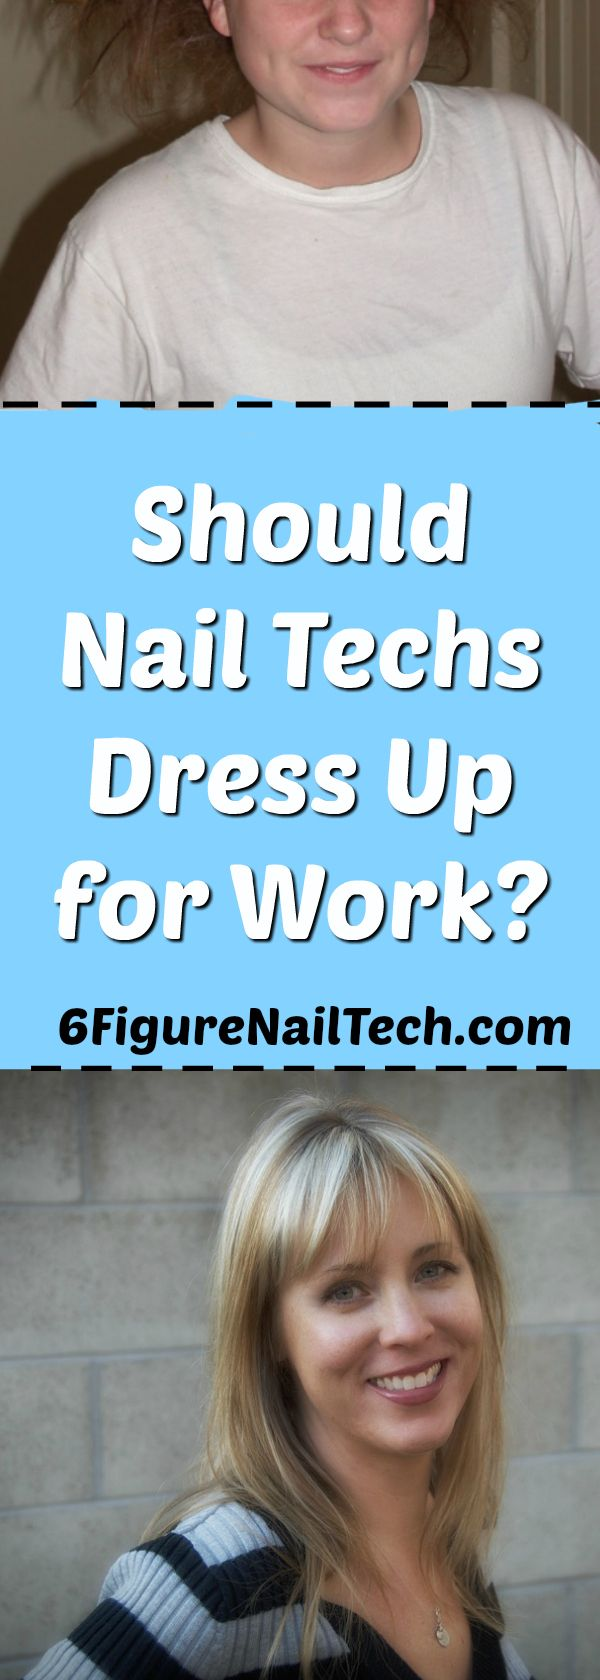 Nail Tech'sShould You Dress Up for Work Hair salon